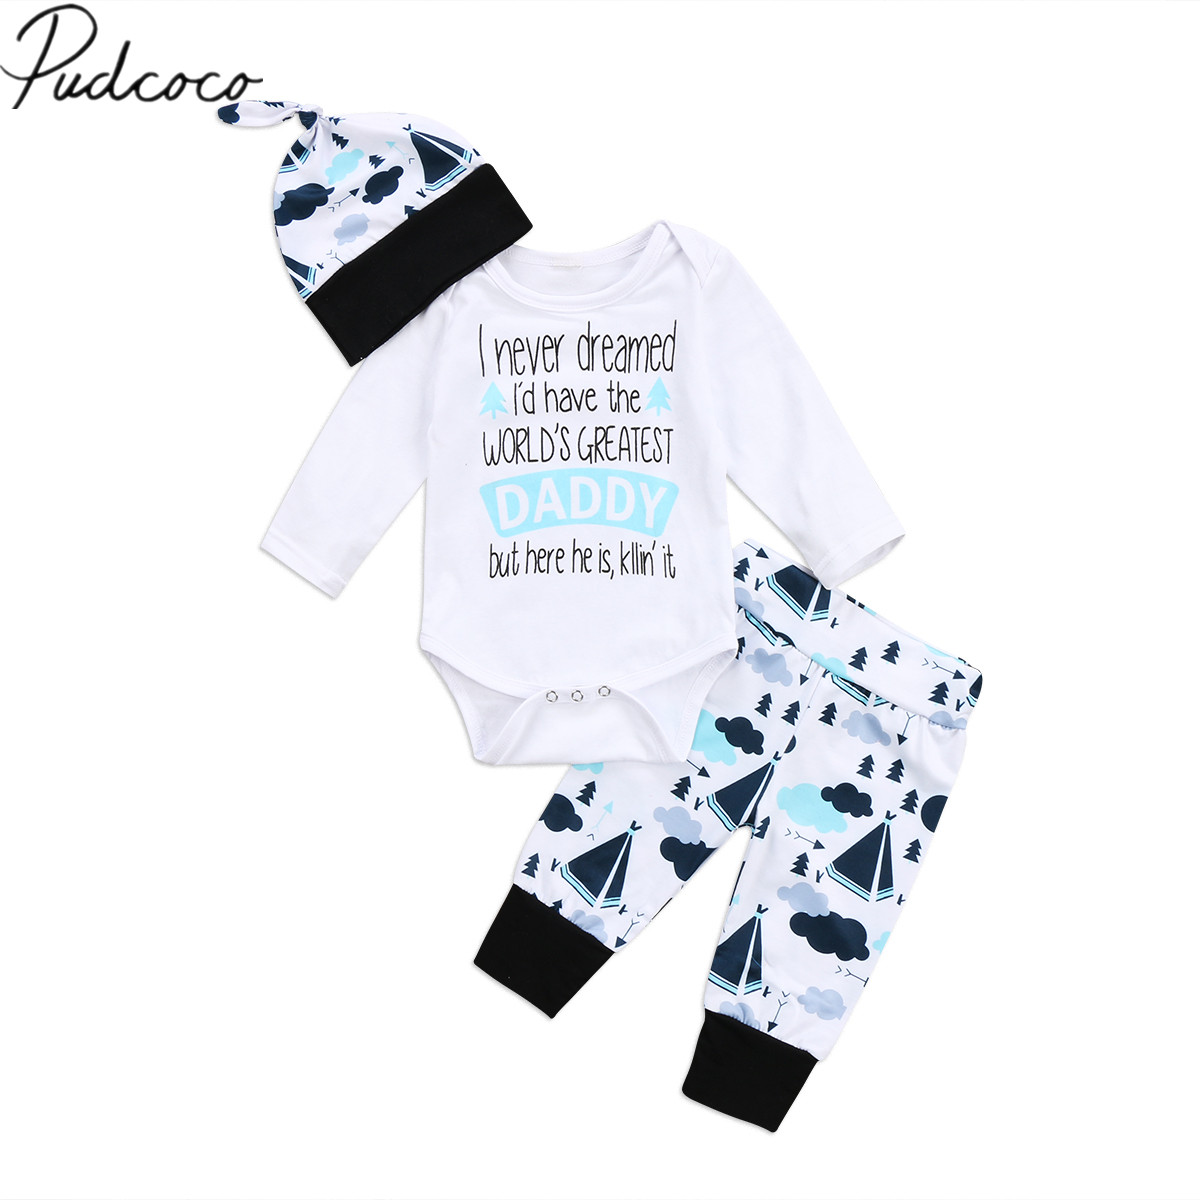 2017 Brand New Adorable Infant Baby Boy Girl Greatest Daddy Romper Pant Leggings Hat 3Pcs Clothes Autumn Casual Outfit Set 0-24M 2pcs set baby clothes set boy